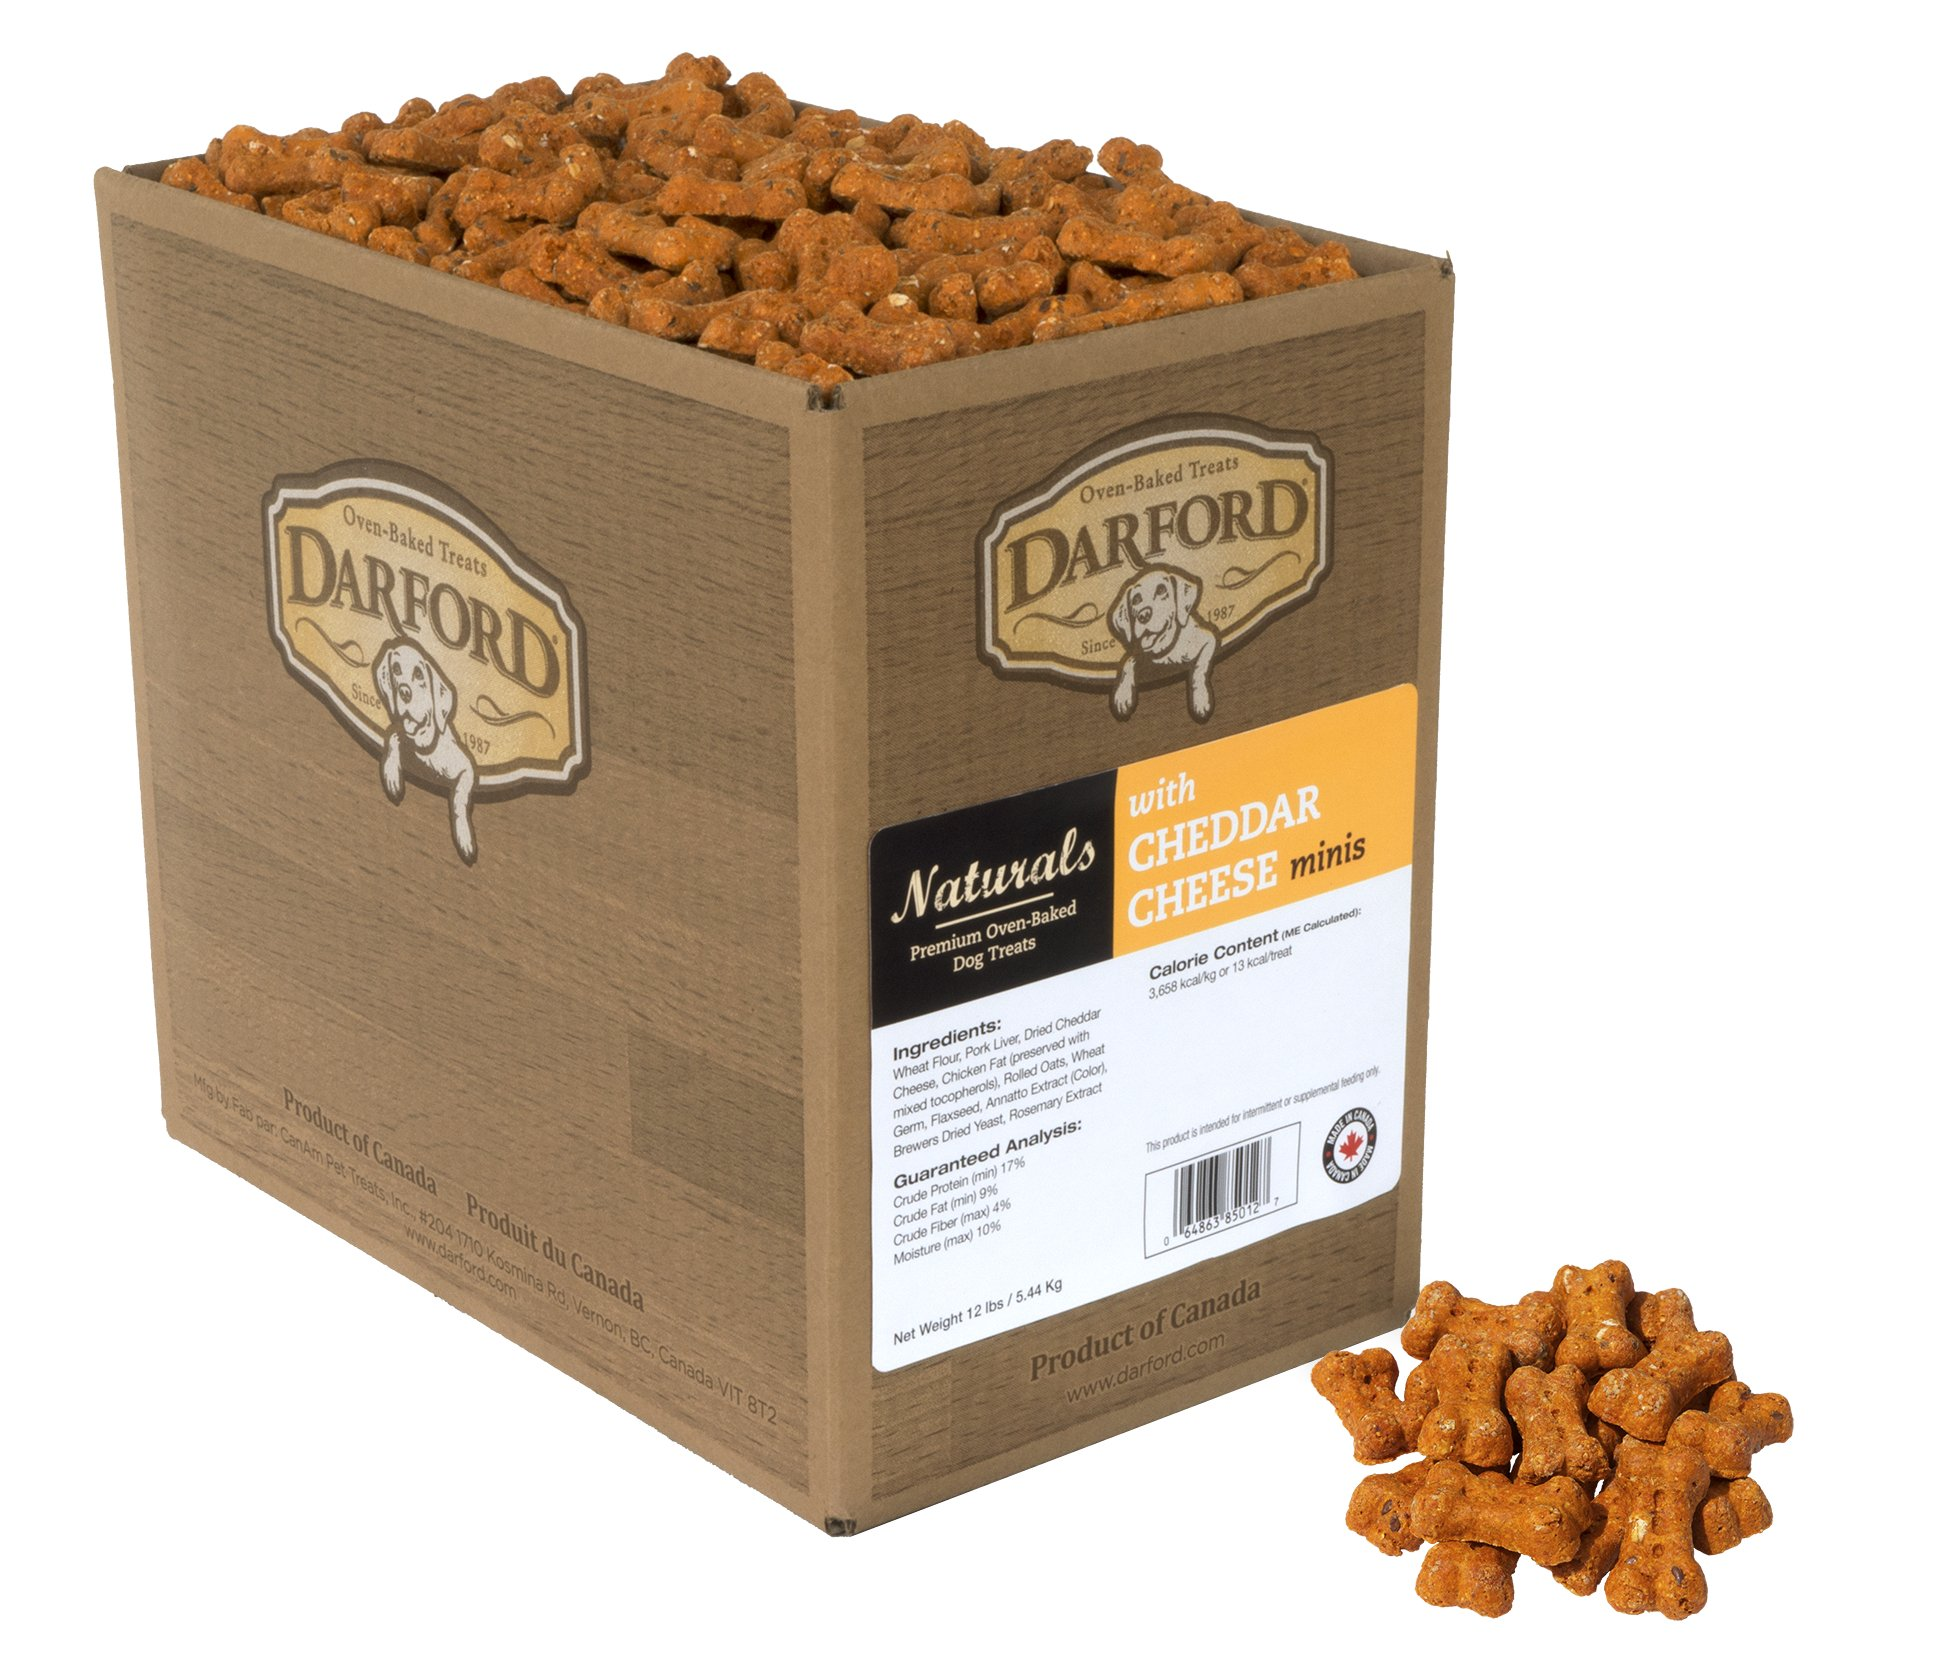 Darford Naturals Oven Baked Dog Treats With Cheddar Cheese Minis, 12 Lb